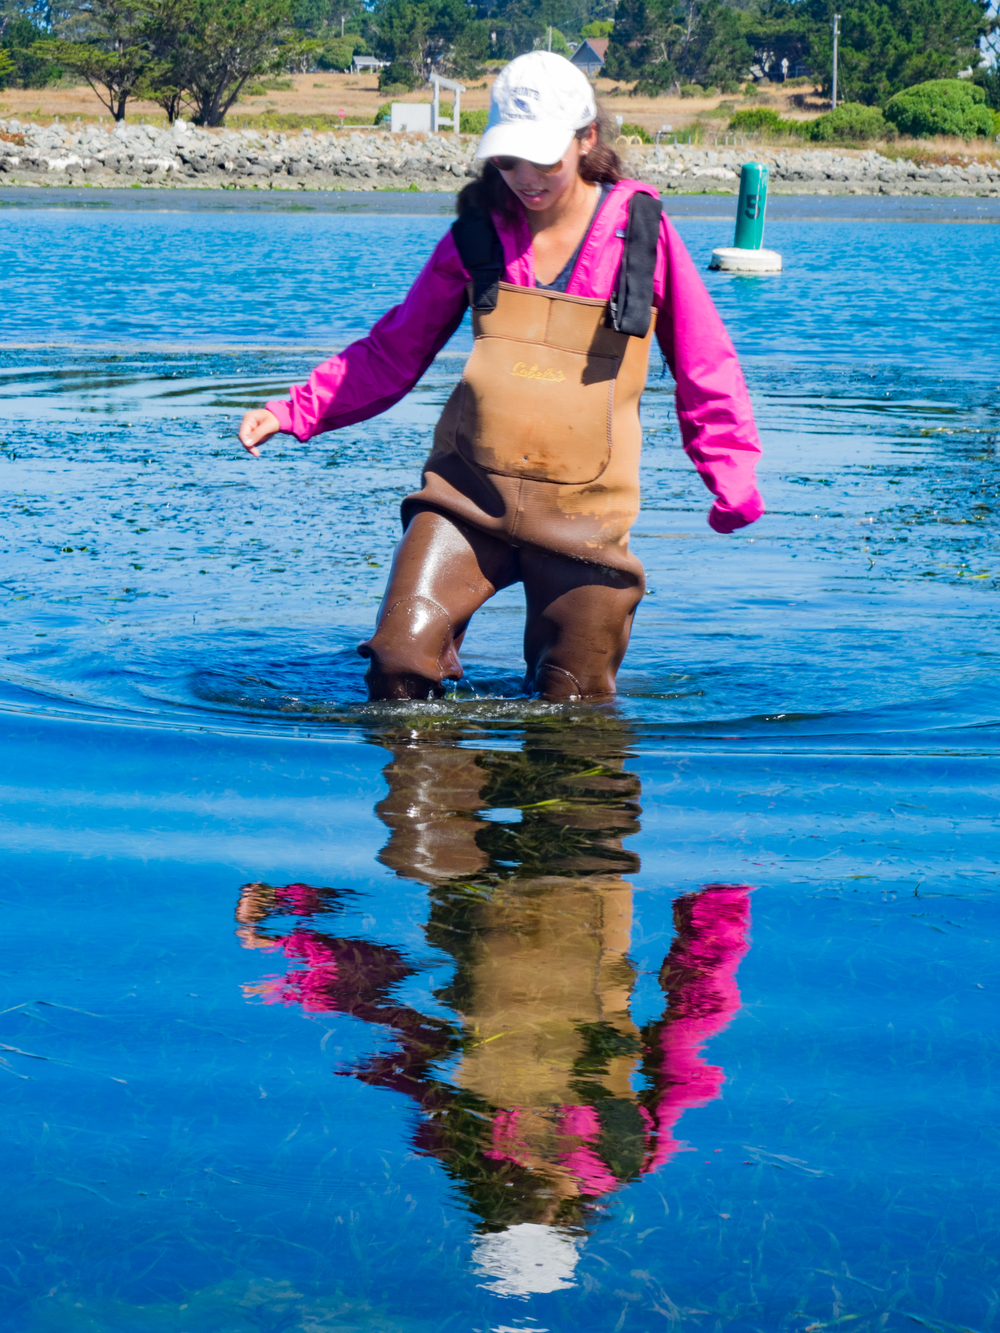 Grace sampling in seagrass beds, Bodega Harbor, CA. Photo credit: A. Ninokawa